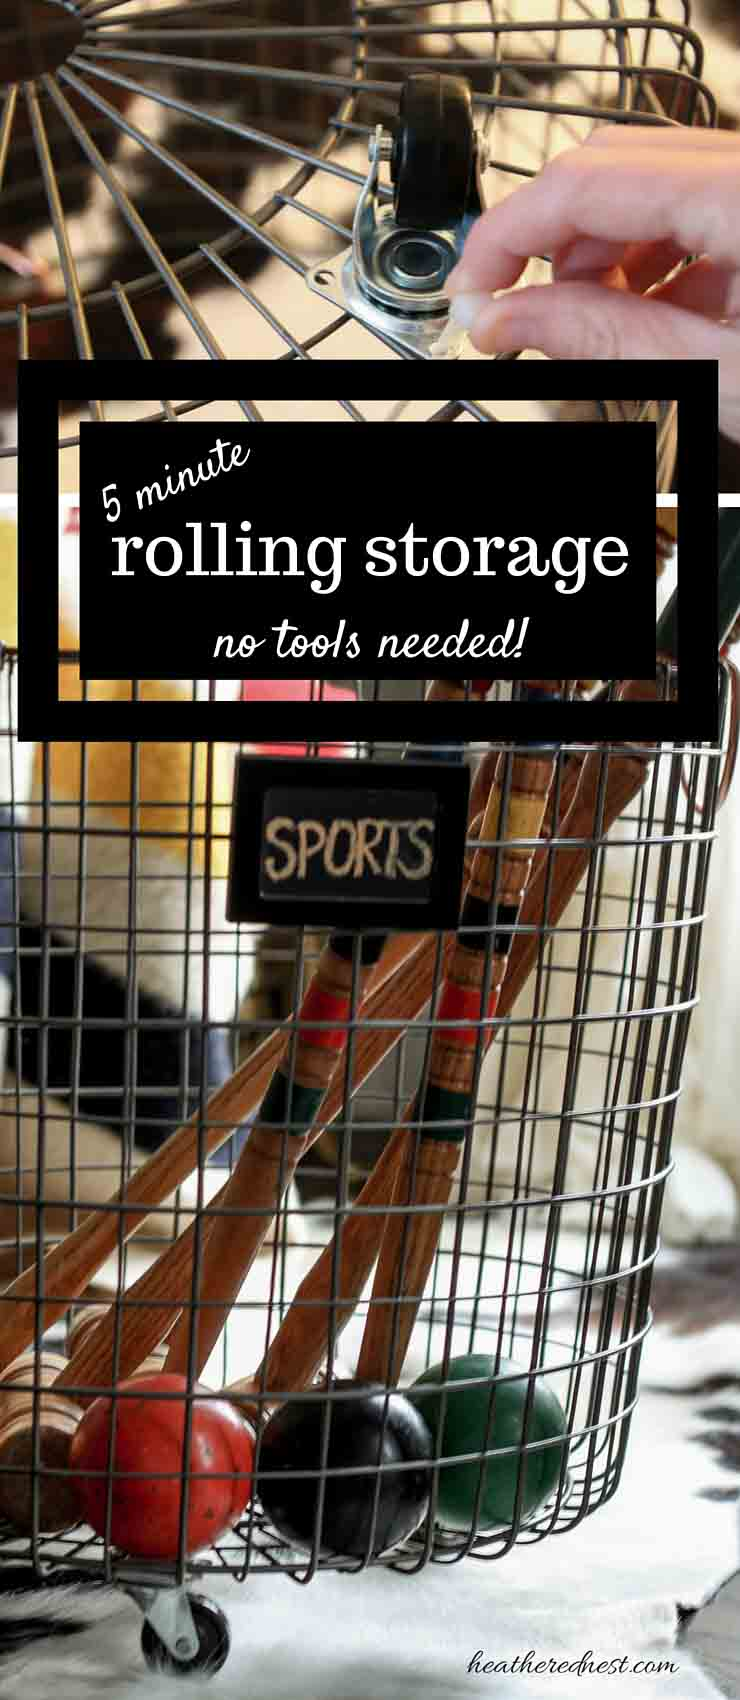 DIY storage solution in 5 minutes, no tools! You've GOT to try this SUPER EASY, fast DIY toy bin. #DIYstorageideas #DIYstorage #DIYtoybin #ziptieprojects #cableties #toybinwithwheels #DIYtoystorage